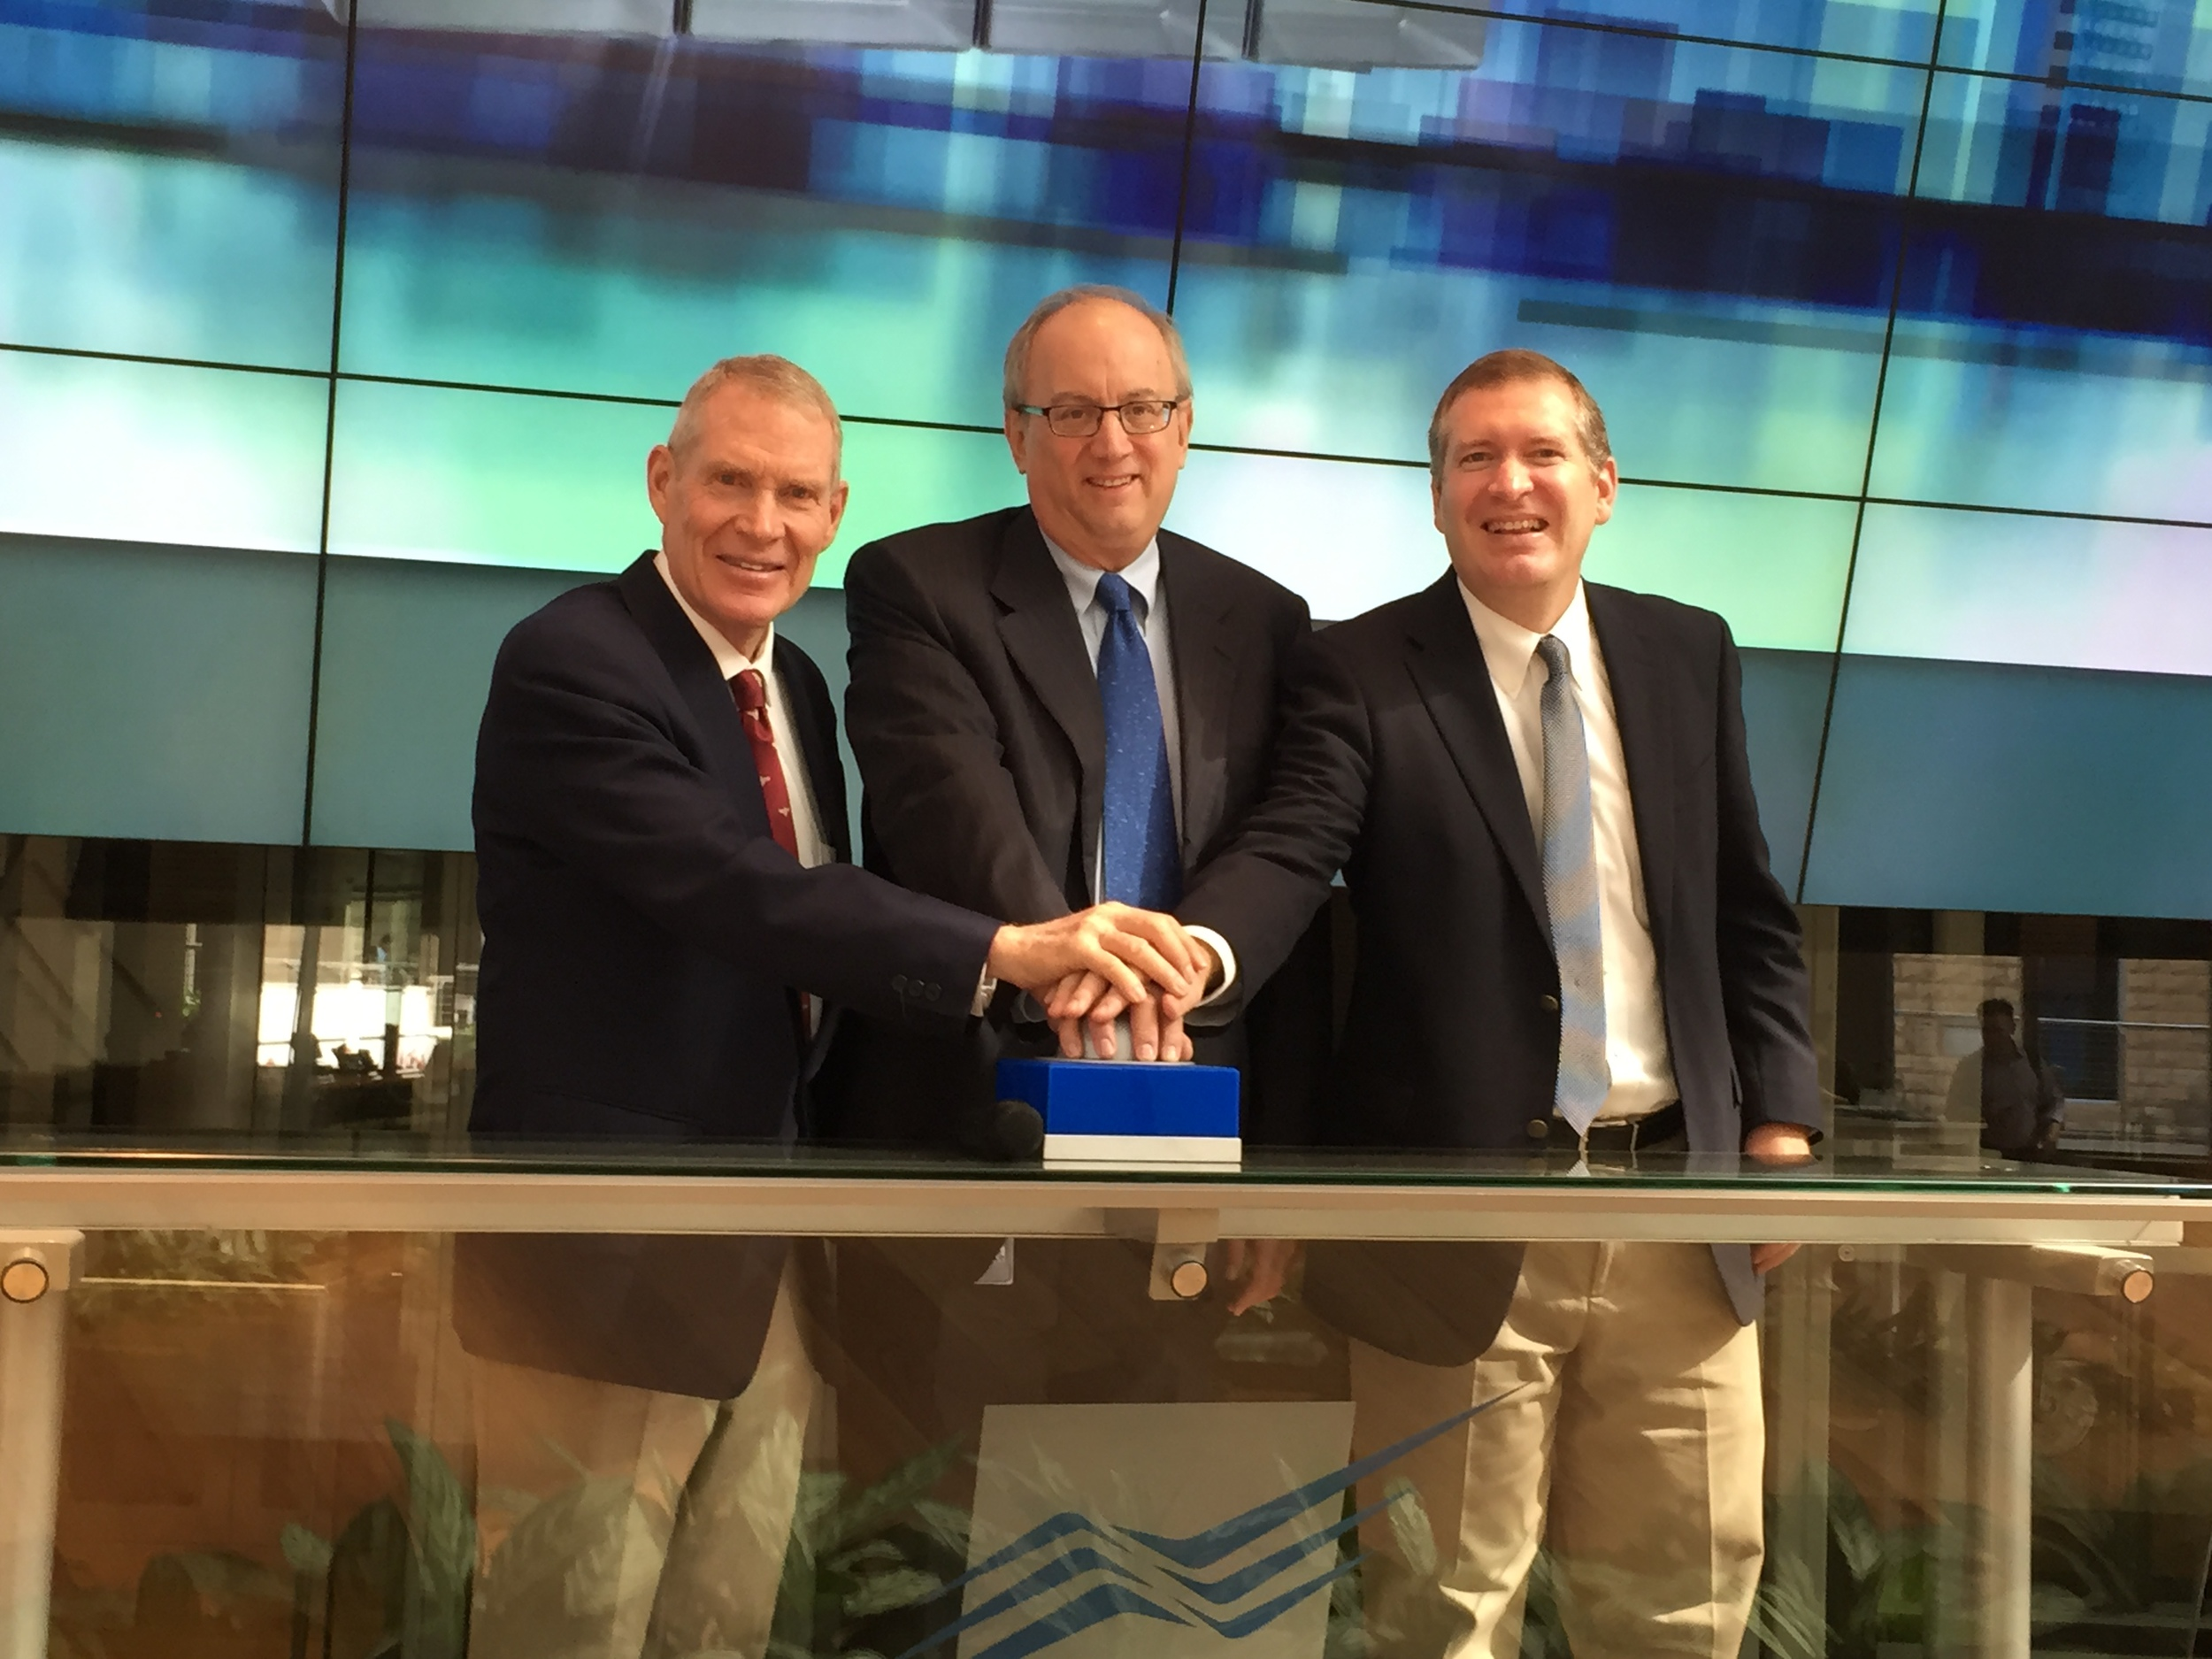 Ringing the bell at the Tel Aviv Stock Exchange. (From left: Larry Lunt, Yossi Beinart, and John Lunt)